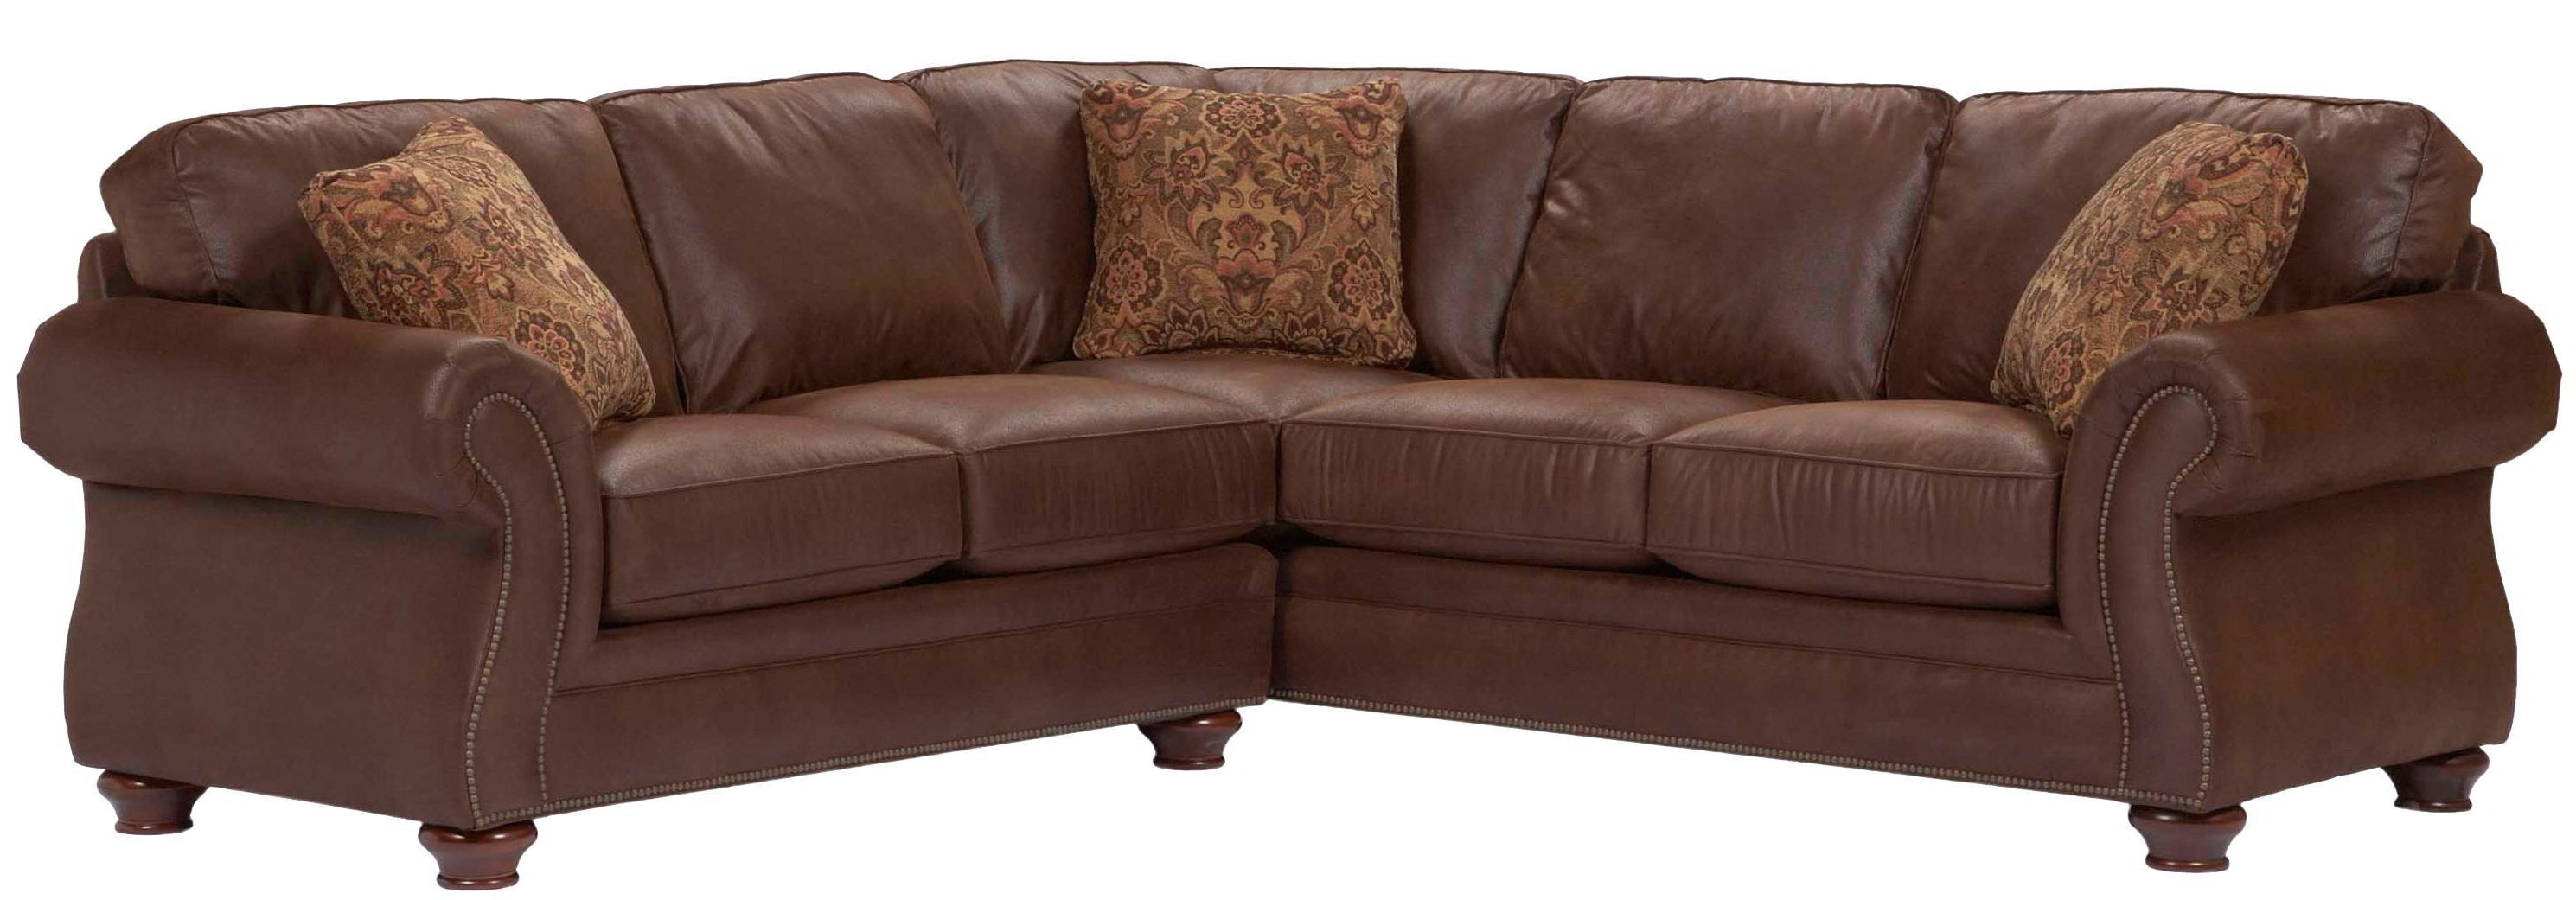 Broyhill Furniture Laramie 2 Piece Corner Sectional Sofa – Ahfa With Regard To Newest Broyhill Sectional Sofas (View 18 of 20)